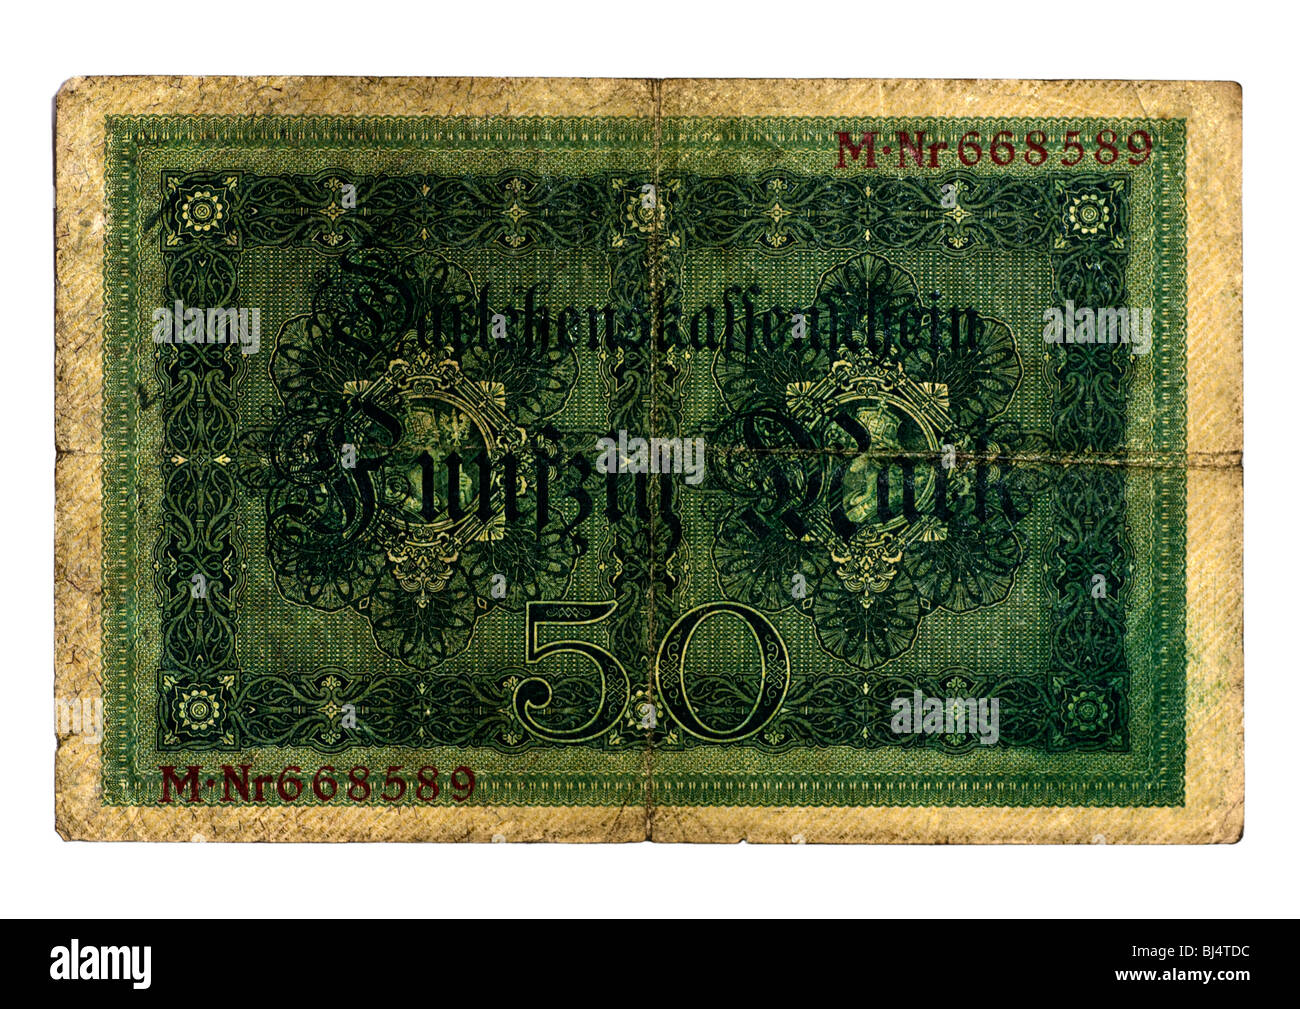 Back of the Loan Society banknote over 50 marks of the National Debt Office, Berlin, Germany, August 5th 1914 - Stock Image